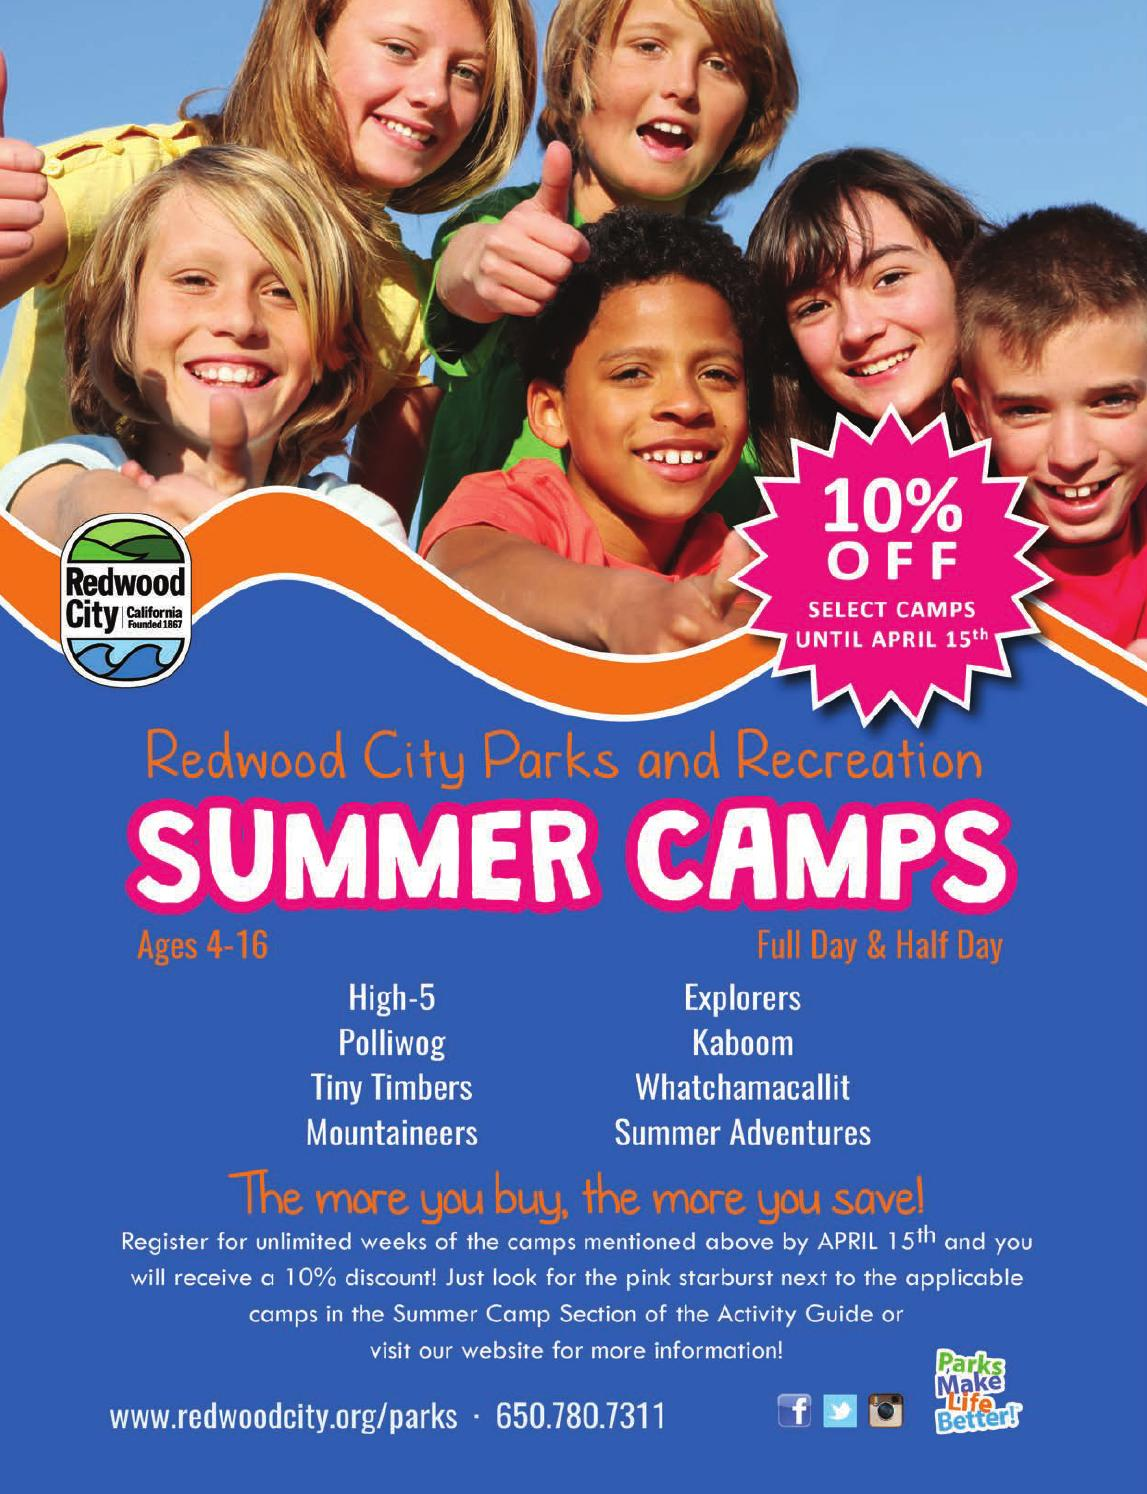 redwood city summer camps by redwood city parks recreation redwood city summer camps 2017 by redwood city parks recreation community services issuu